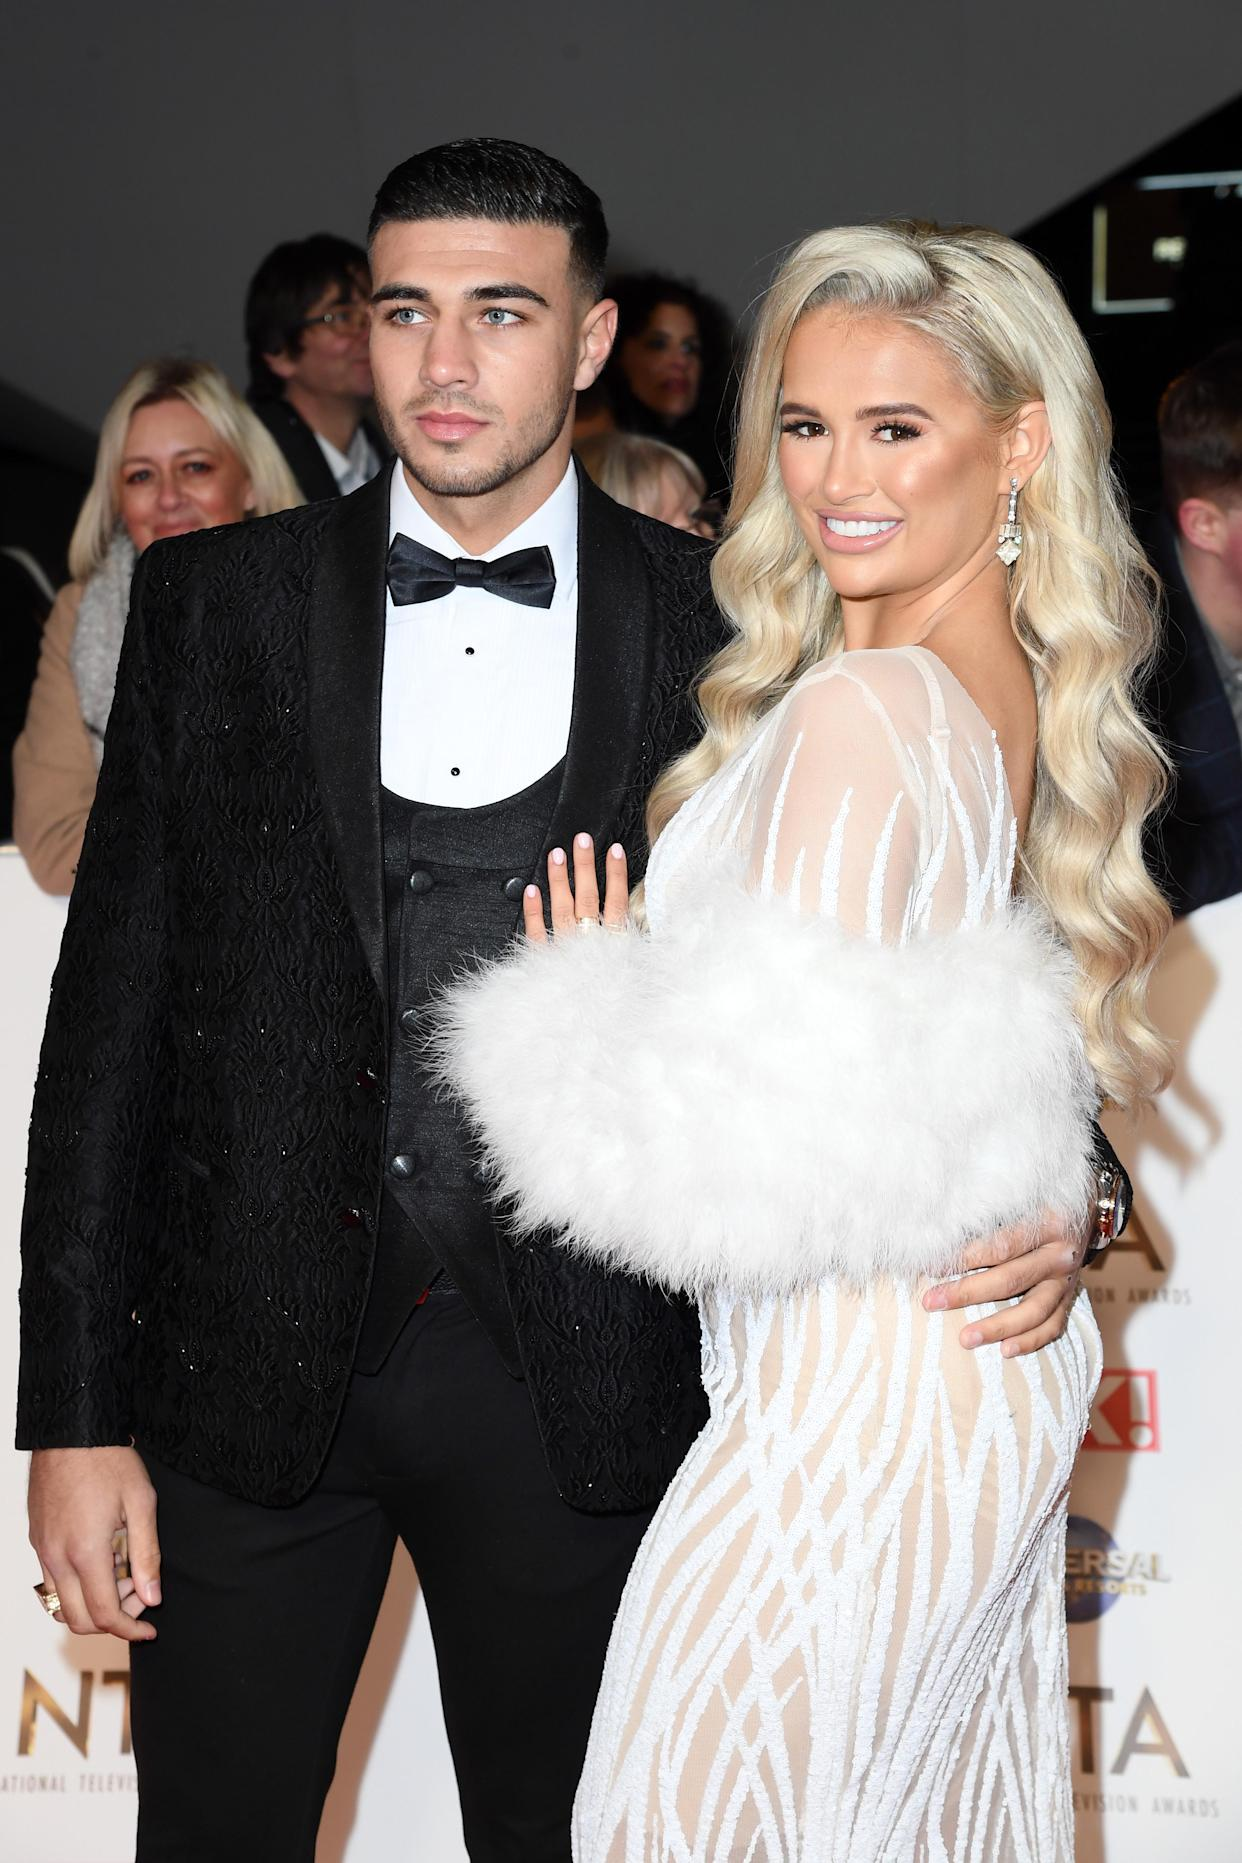 Molly-Mae Hague pictured with boyfriend Tommy Fury. (Photo by Gareth Cattermole/Getty Images)